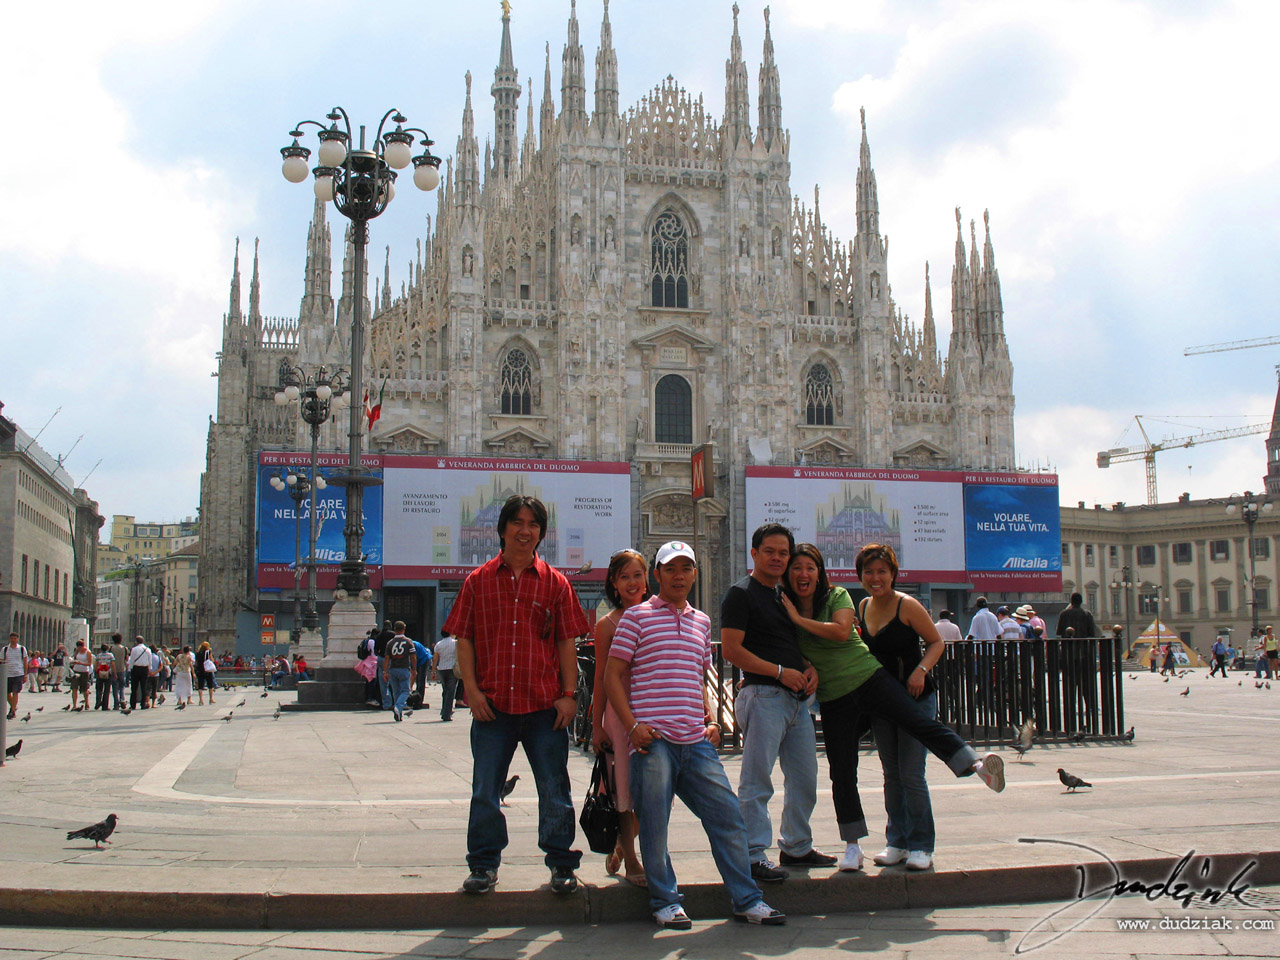 The Filipino friends I made in Milan posing in the Piazza del Duomo in front of the Cathedral of Milan